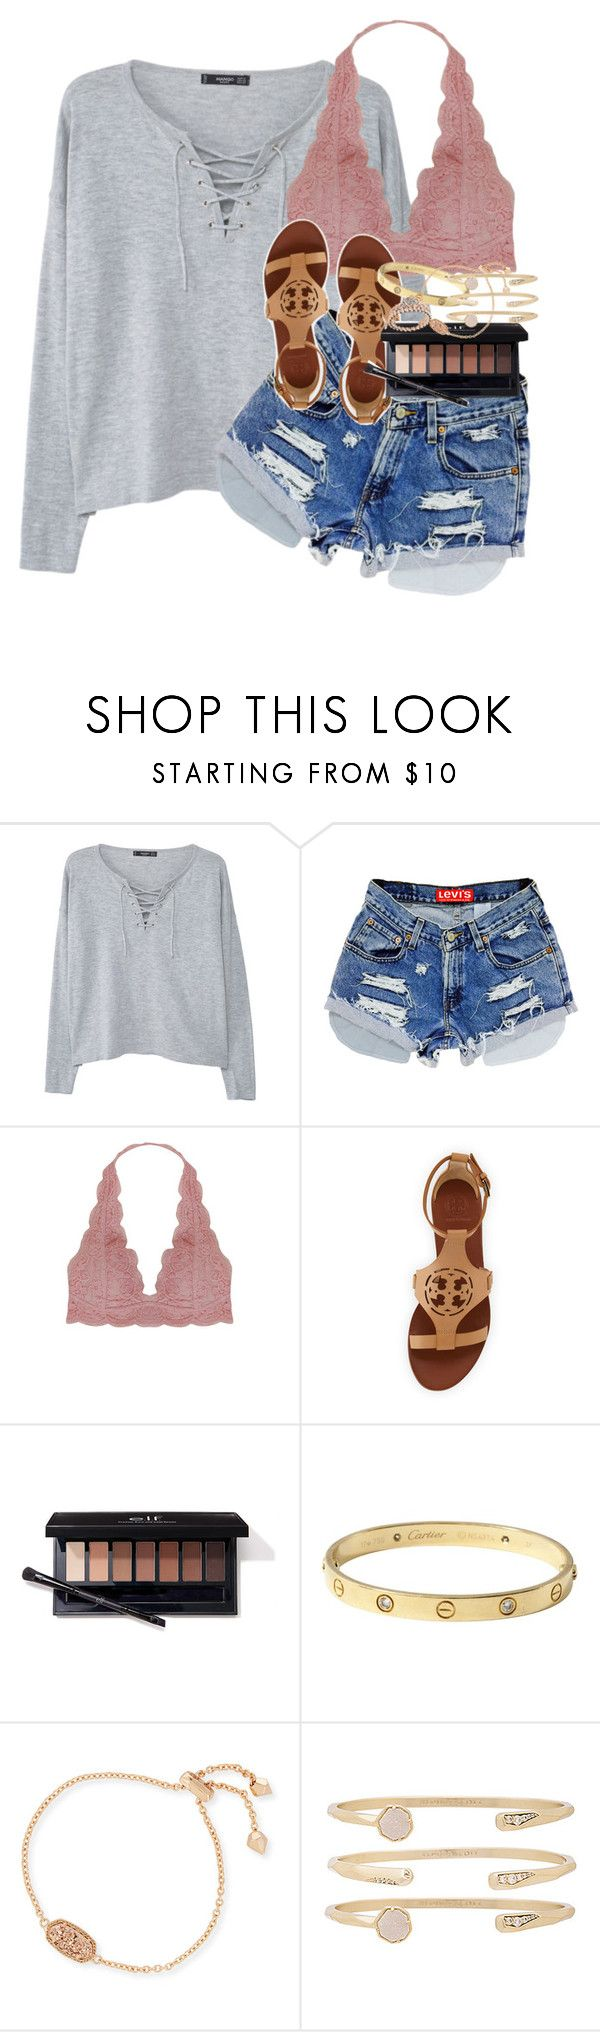 """""""why trust people with your heart, when you cant trust them with your feelings?"""" by emilyandella ❤ liked on Polyvore featuring MANGO, Humble Chic, Tory Burch, Cartier, Kendra Scott and Pandora"""